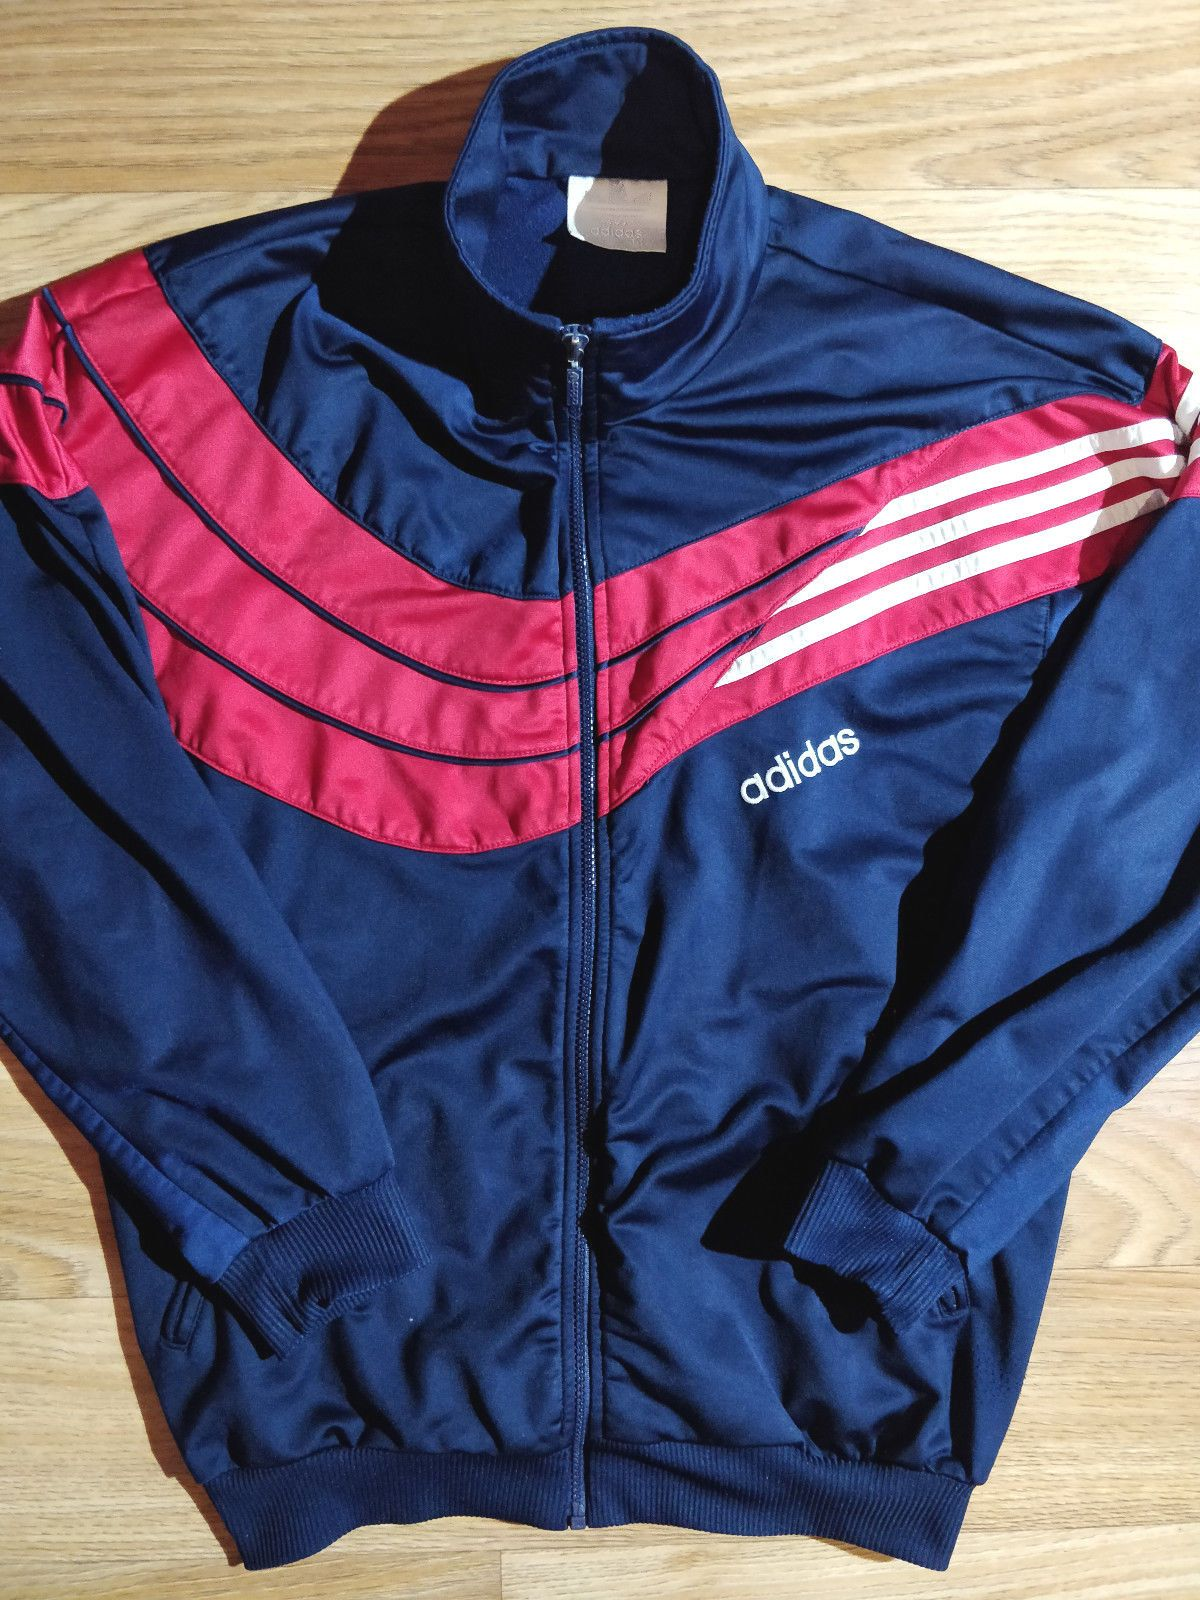 fea1ef5796d1 Adidas Originals 90 s Vintage Mens Tracksuit Top Jacket Navy Blue Red